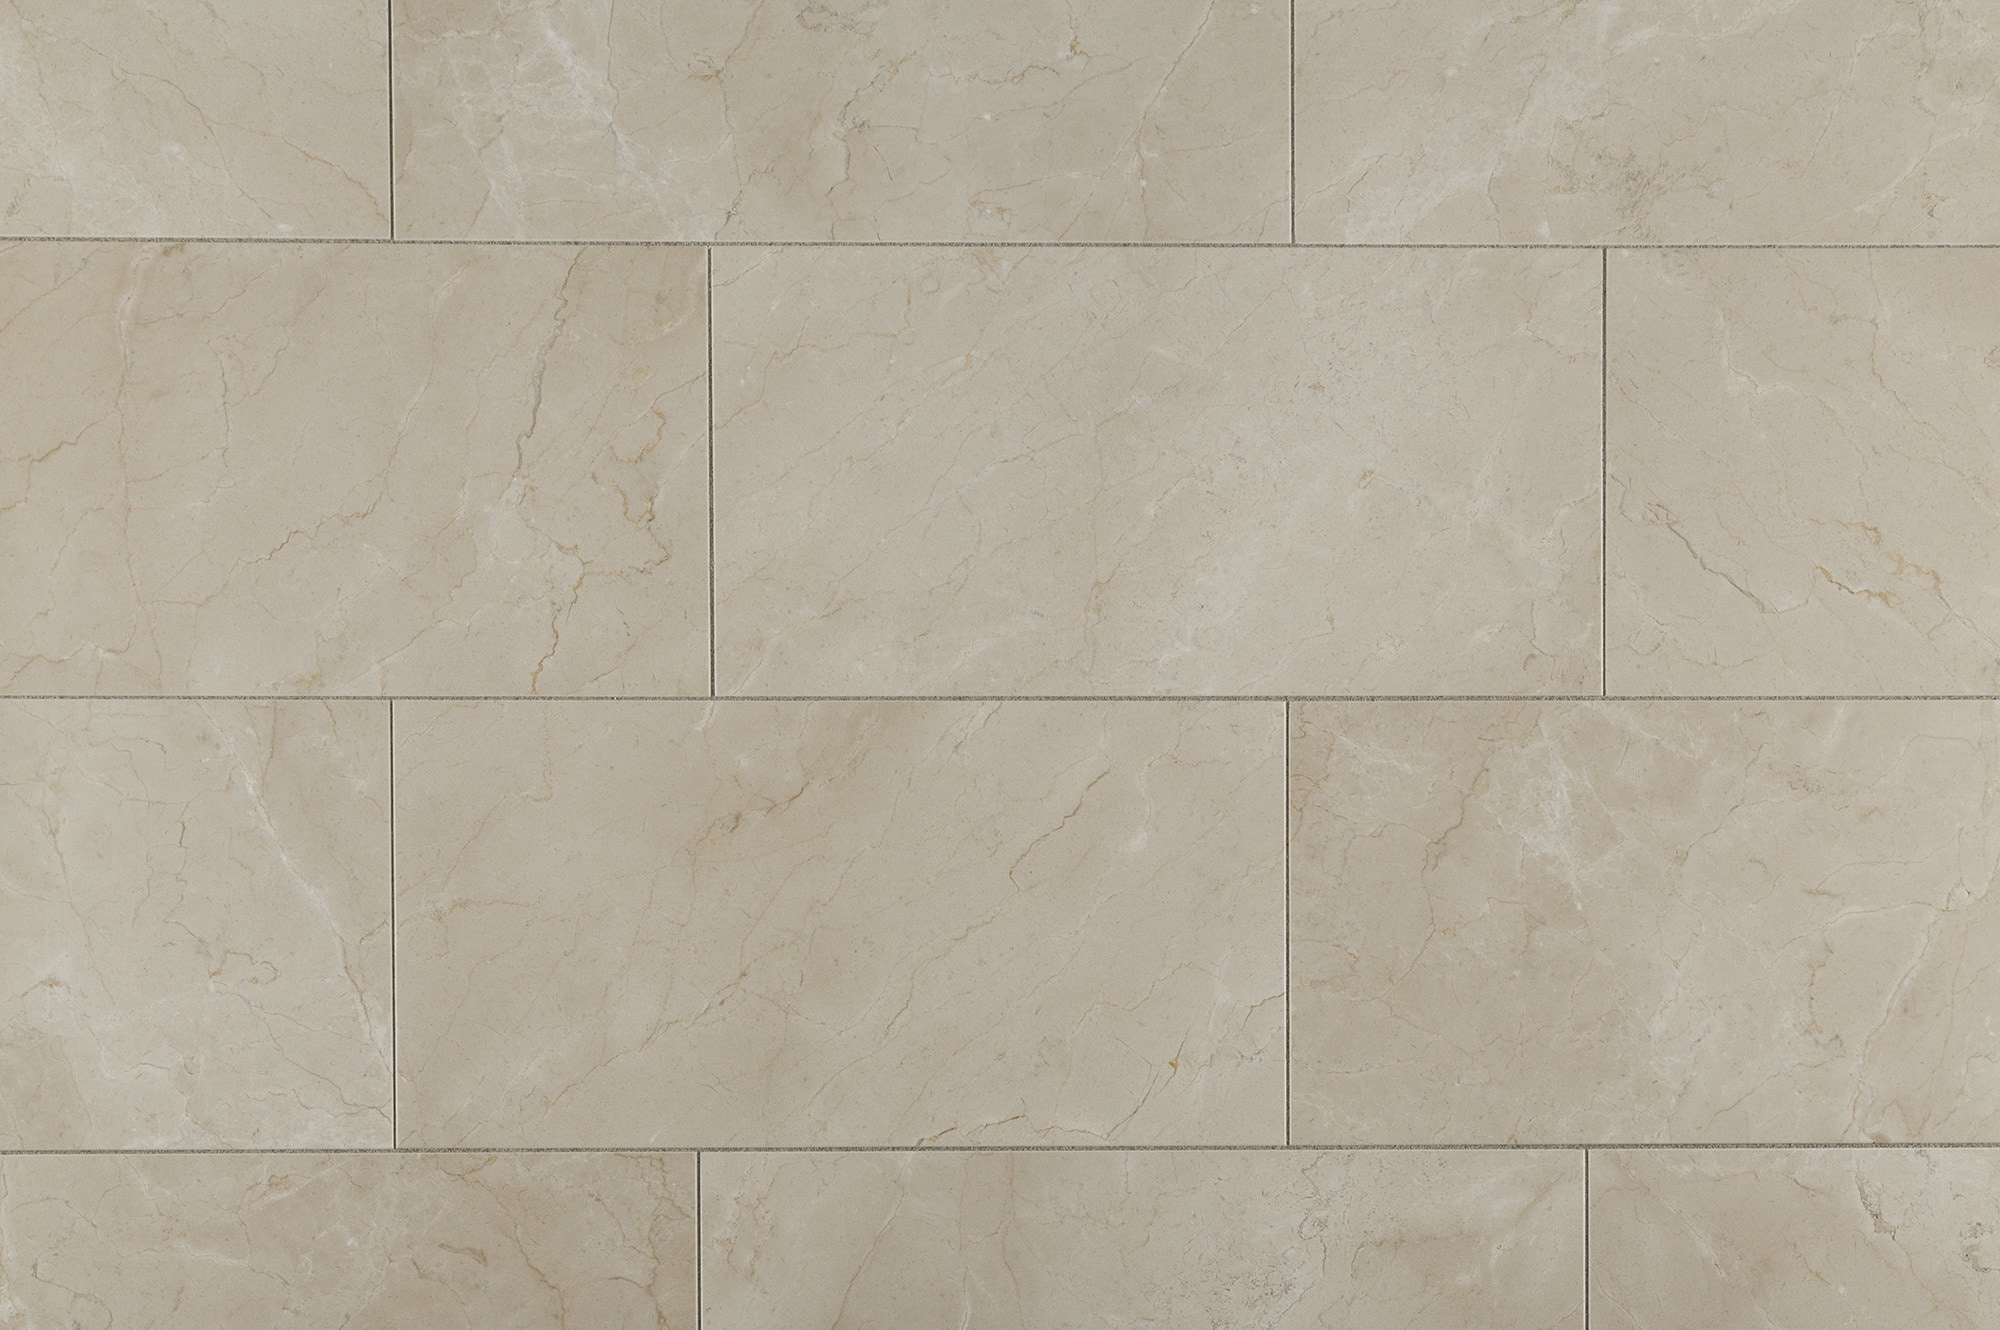 Pedra marble tile coliseum collection crema marfil select 12 pedra marble tile coliseum collection crema marfil select 12x24 polished dailygadgetfo Image collections